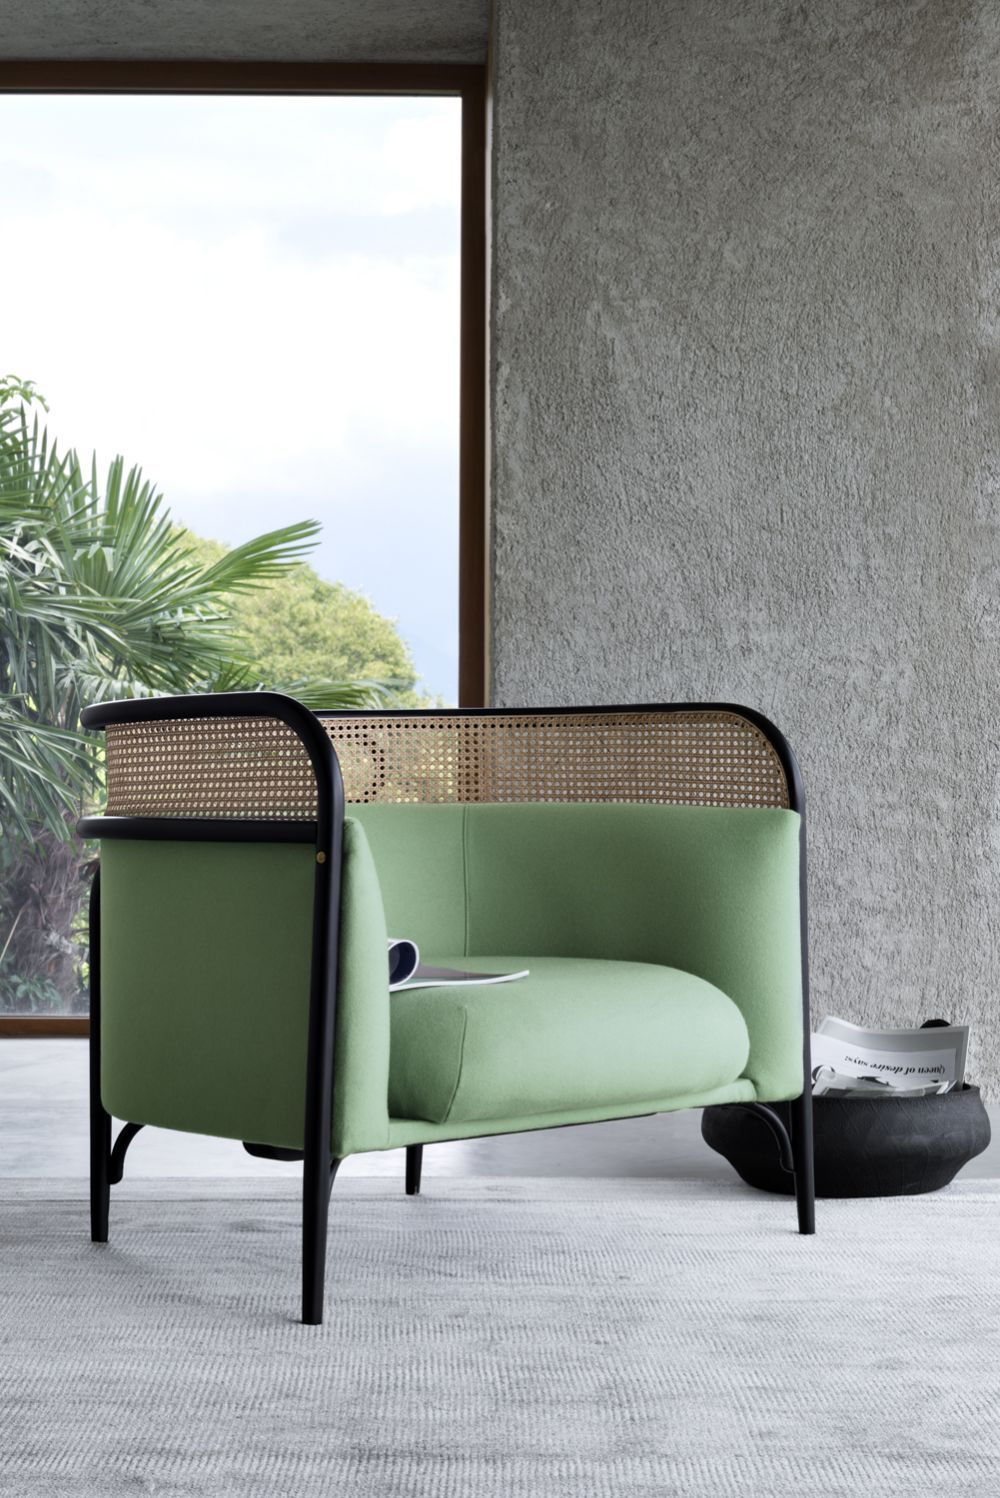 Lounge Sessel Thonet Targa Lounge By Gamfratesi For Gebrüder Thonet Vienna Flodeau